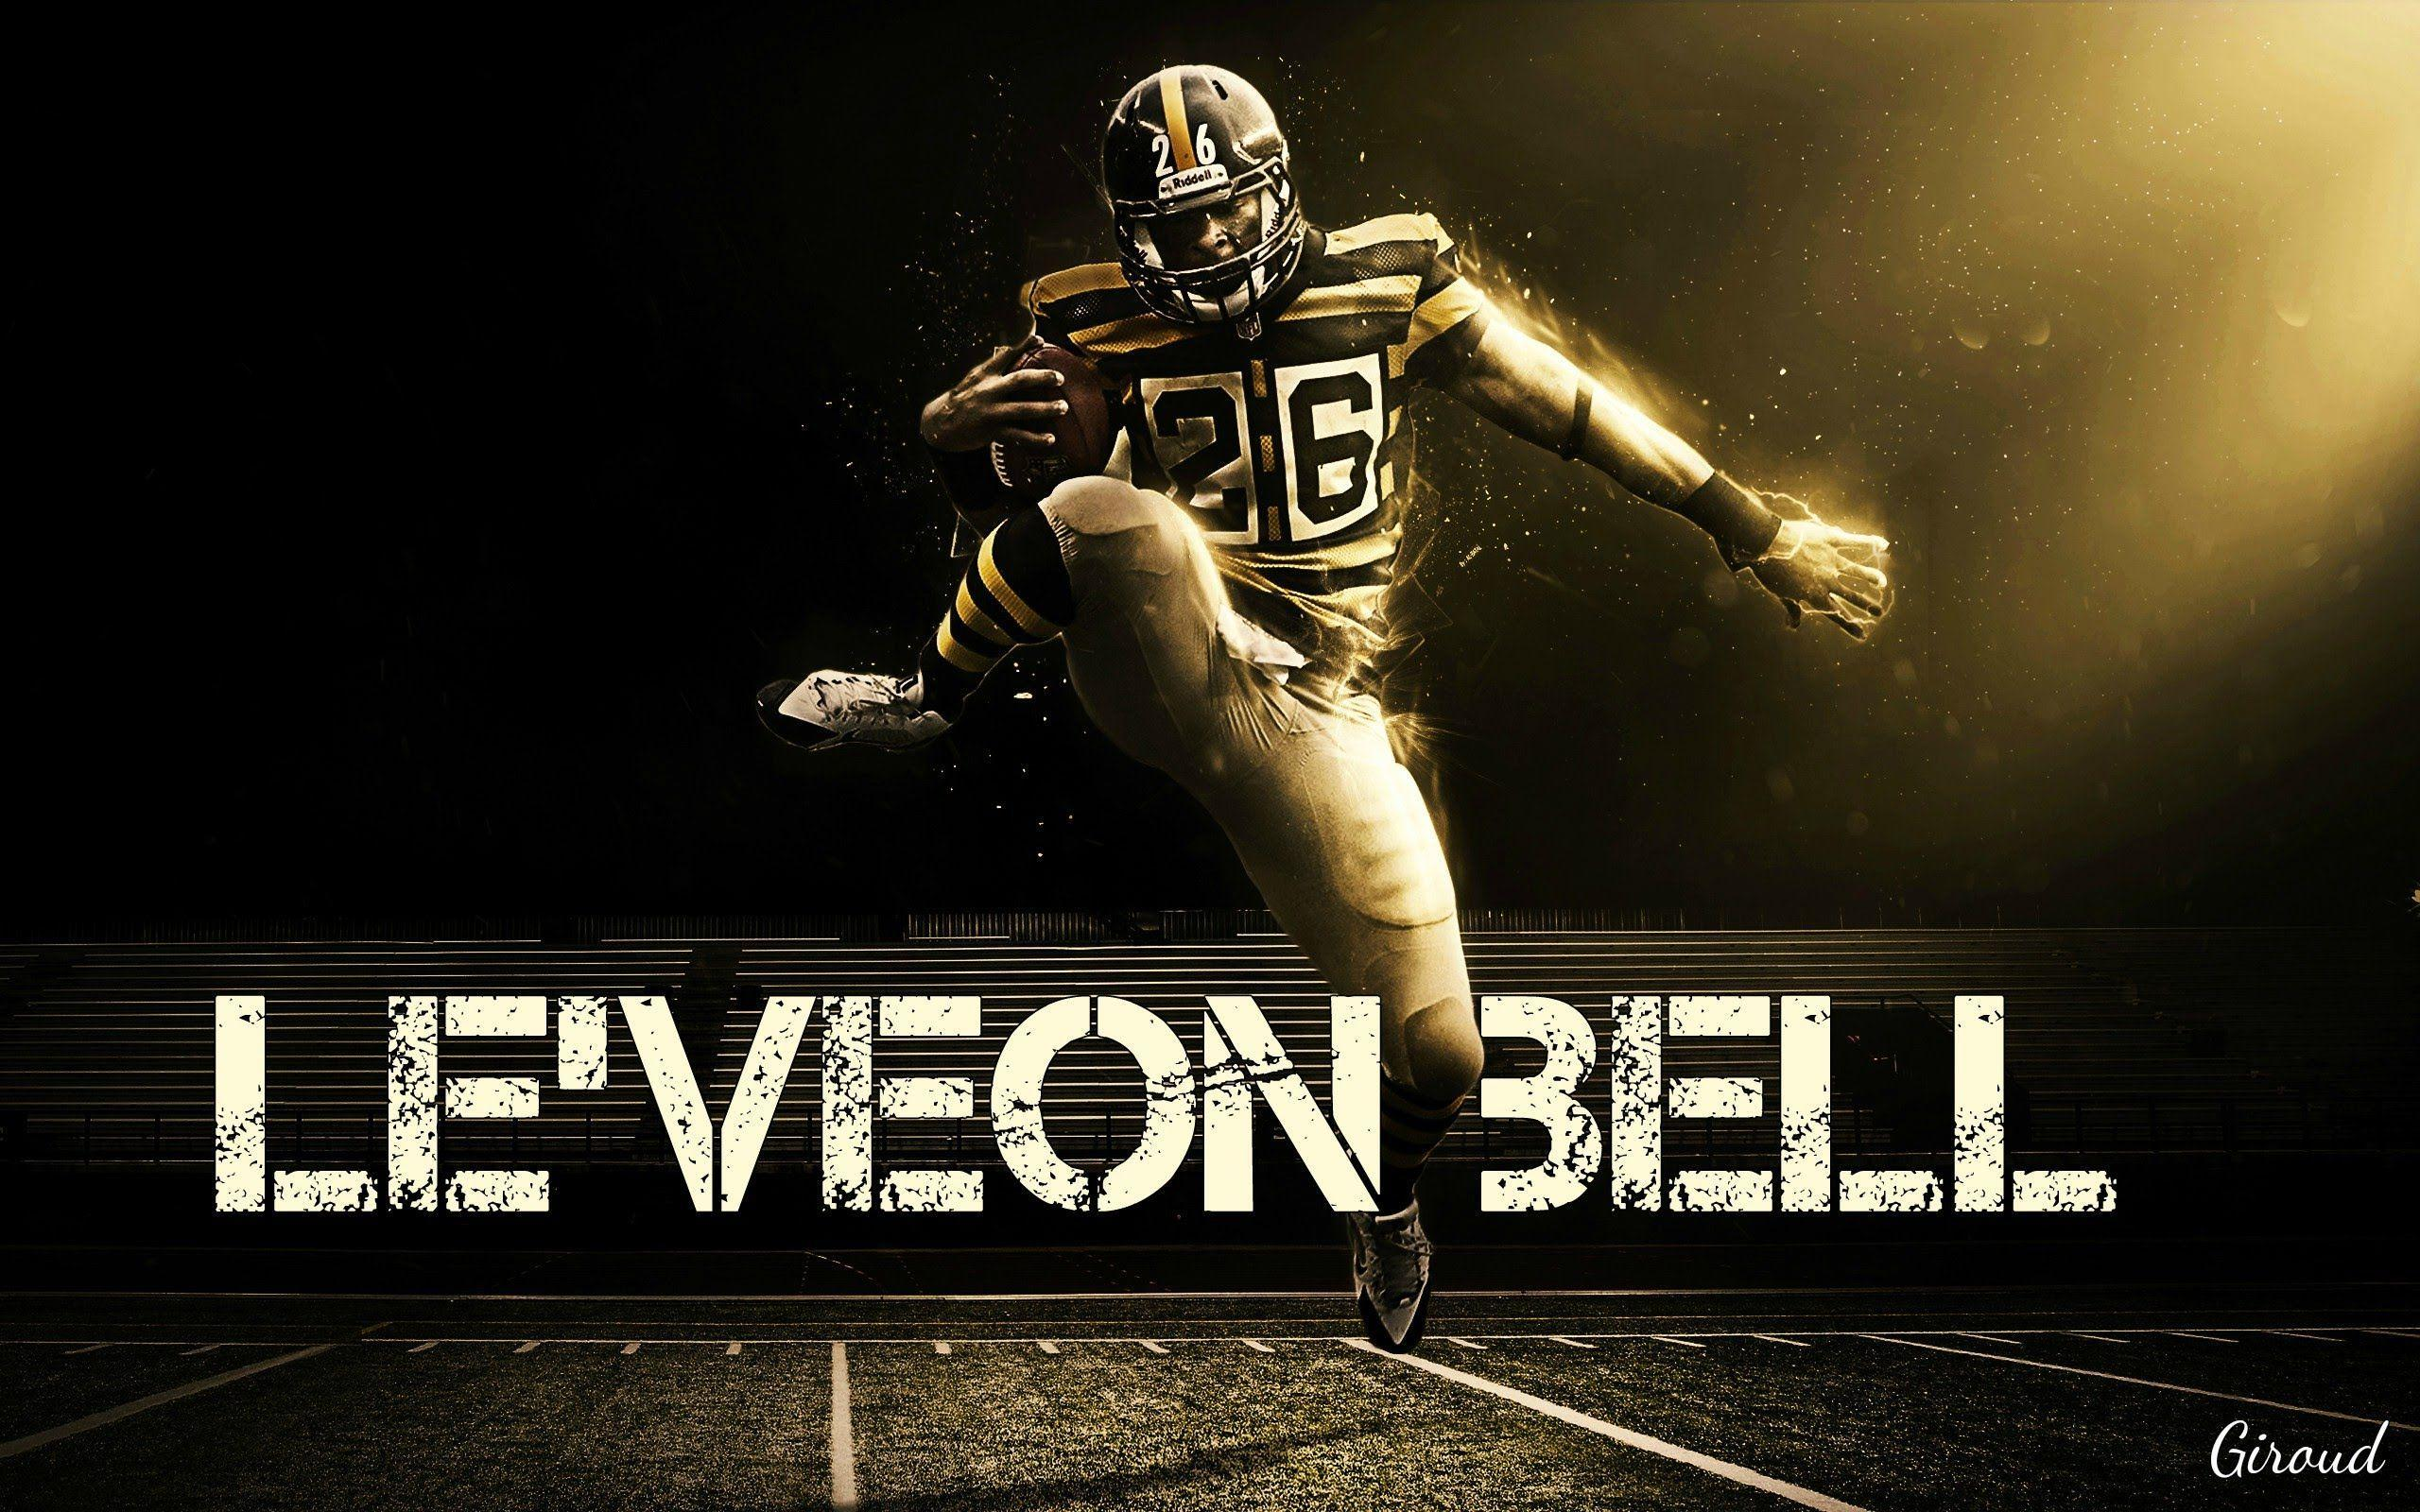 Le'Veon Bell ''Antidote '' | ᴴᴰ - YouTube